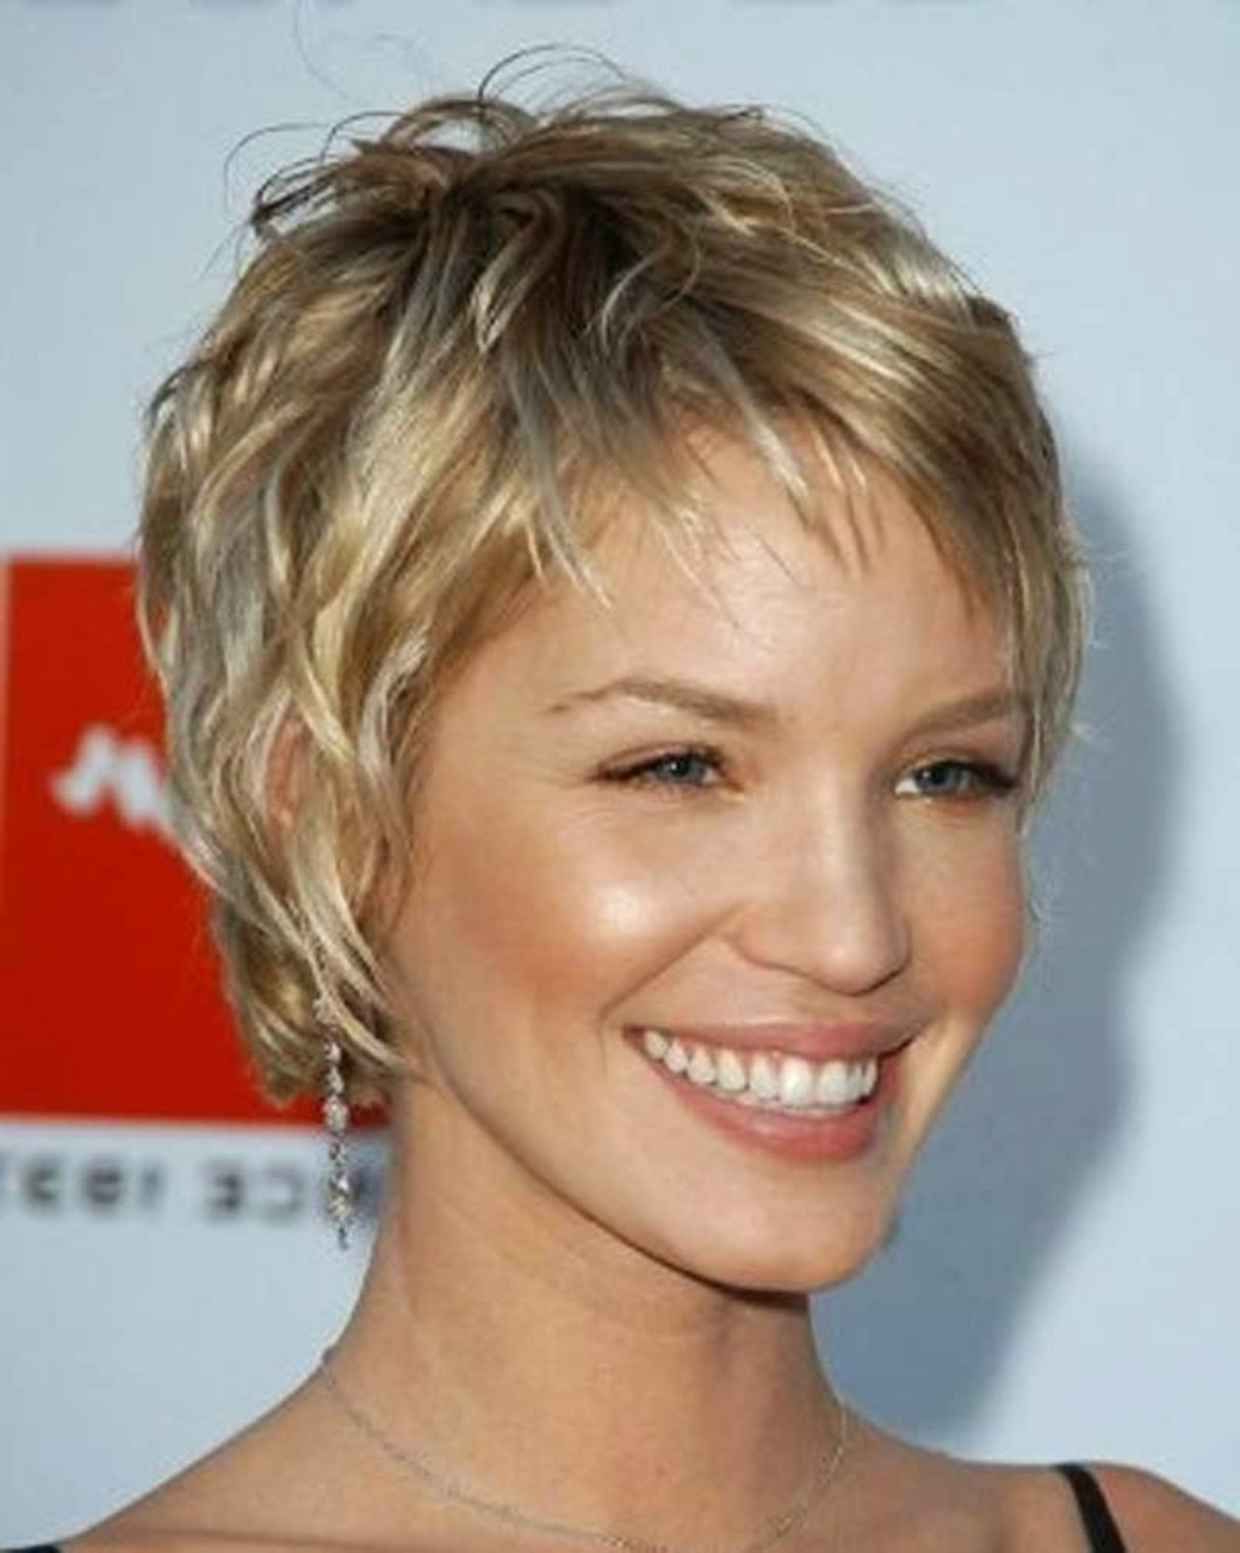 The Best Cuts For Fine, Curly Hair And A High Forehead | Hair Pertaining To Short Haircuts For Thin Curly Hair (View 6 of 25)